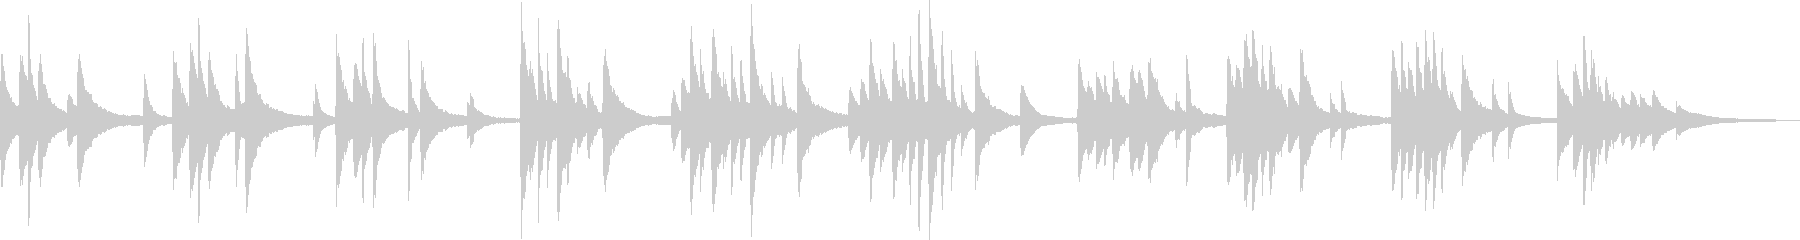 Fleeting and fantastic piano ballad (painful)'s unreproduced waveform